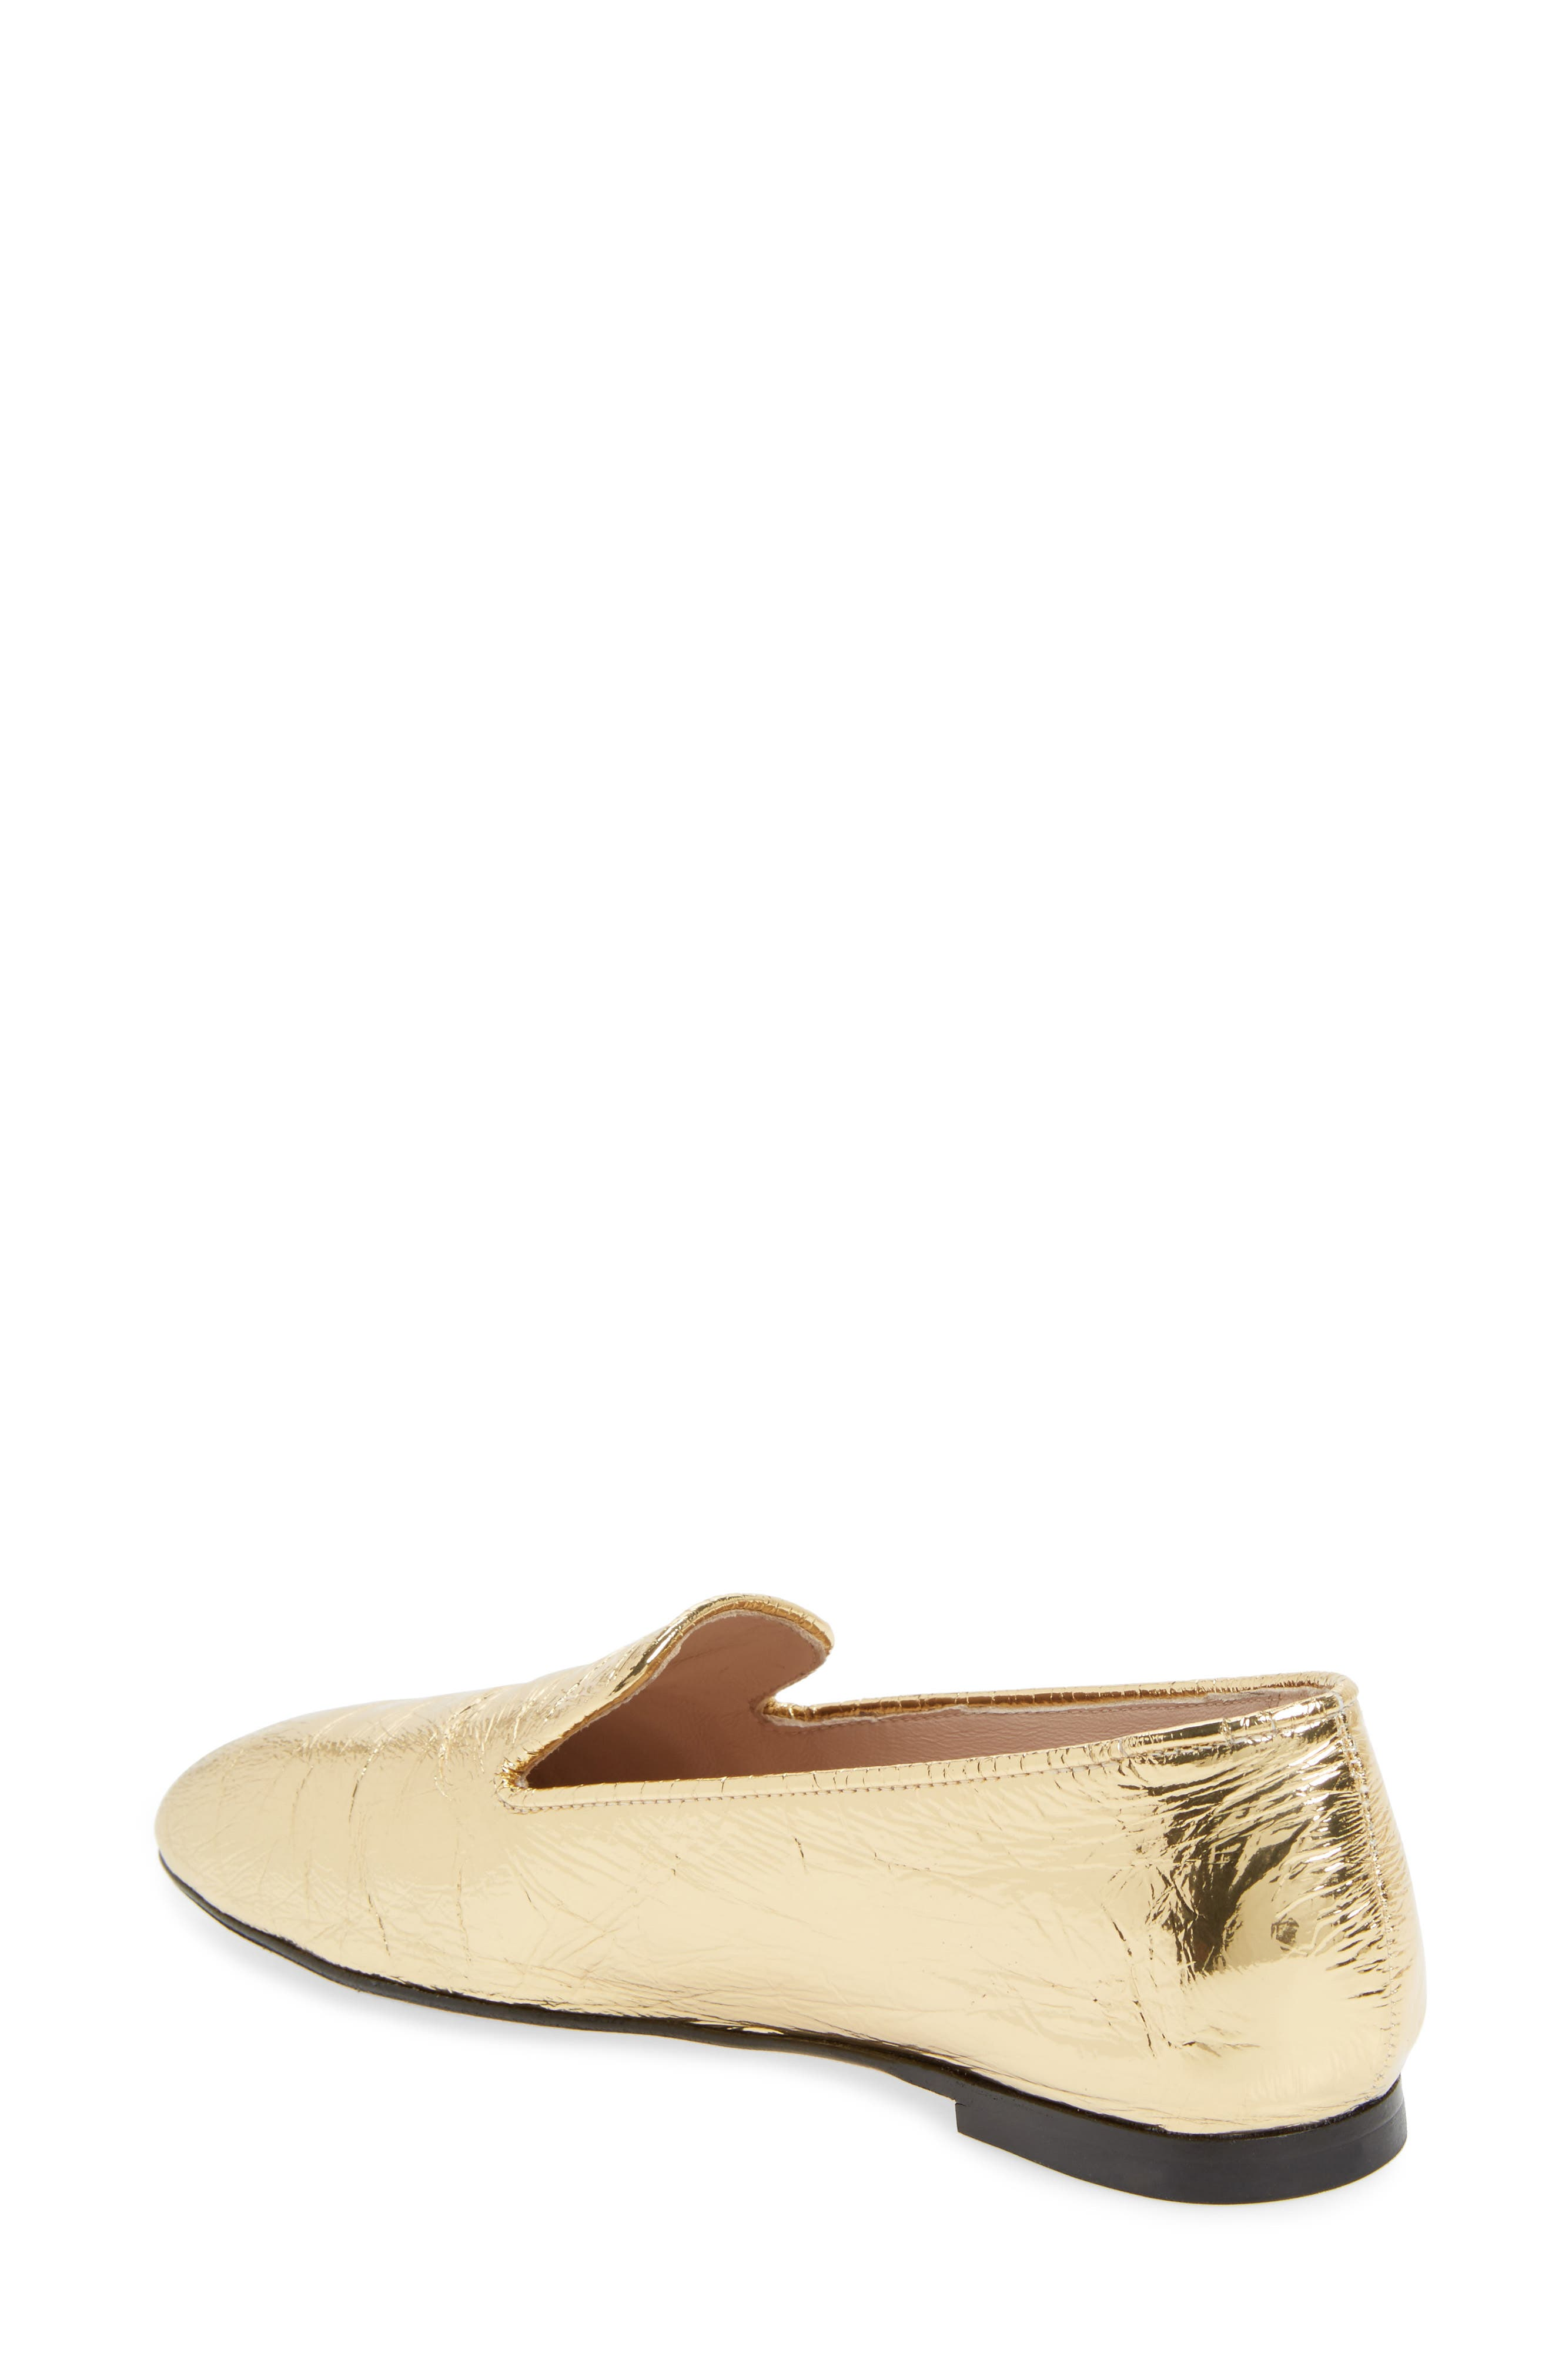 Myguy Venetian Loafer,                             Alternate thumbnail 2, color,                             Gold Look